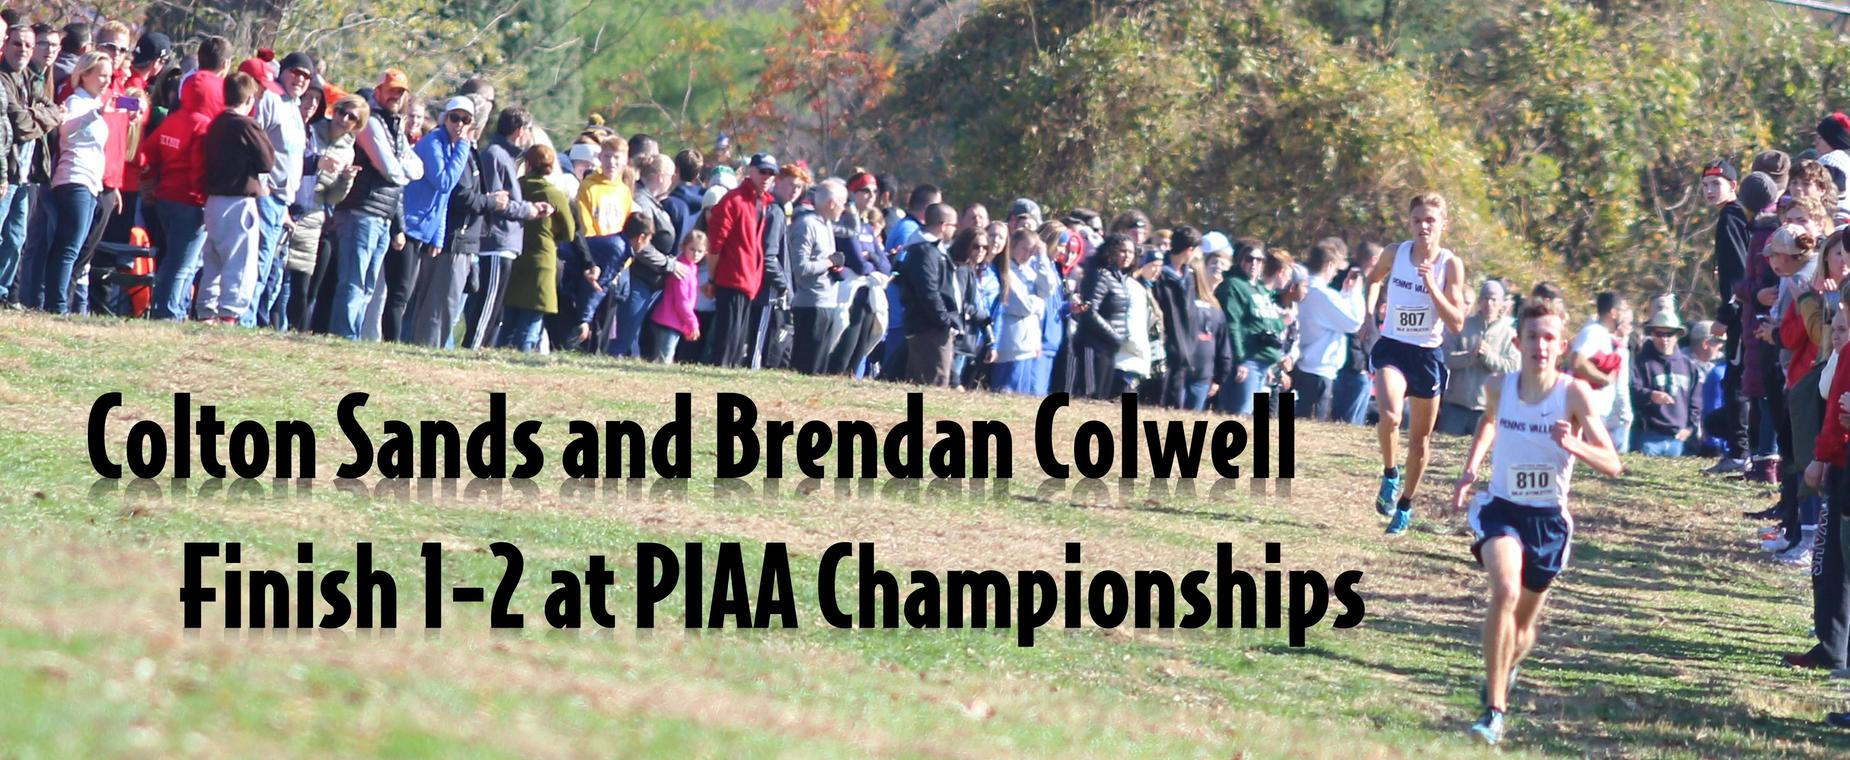 Colton Sands and Brendan Colwell finished 1-2 at the PIAA State Cross Country Championships in Hershey on Saturday.